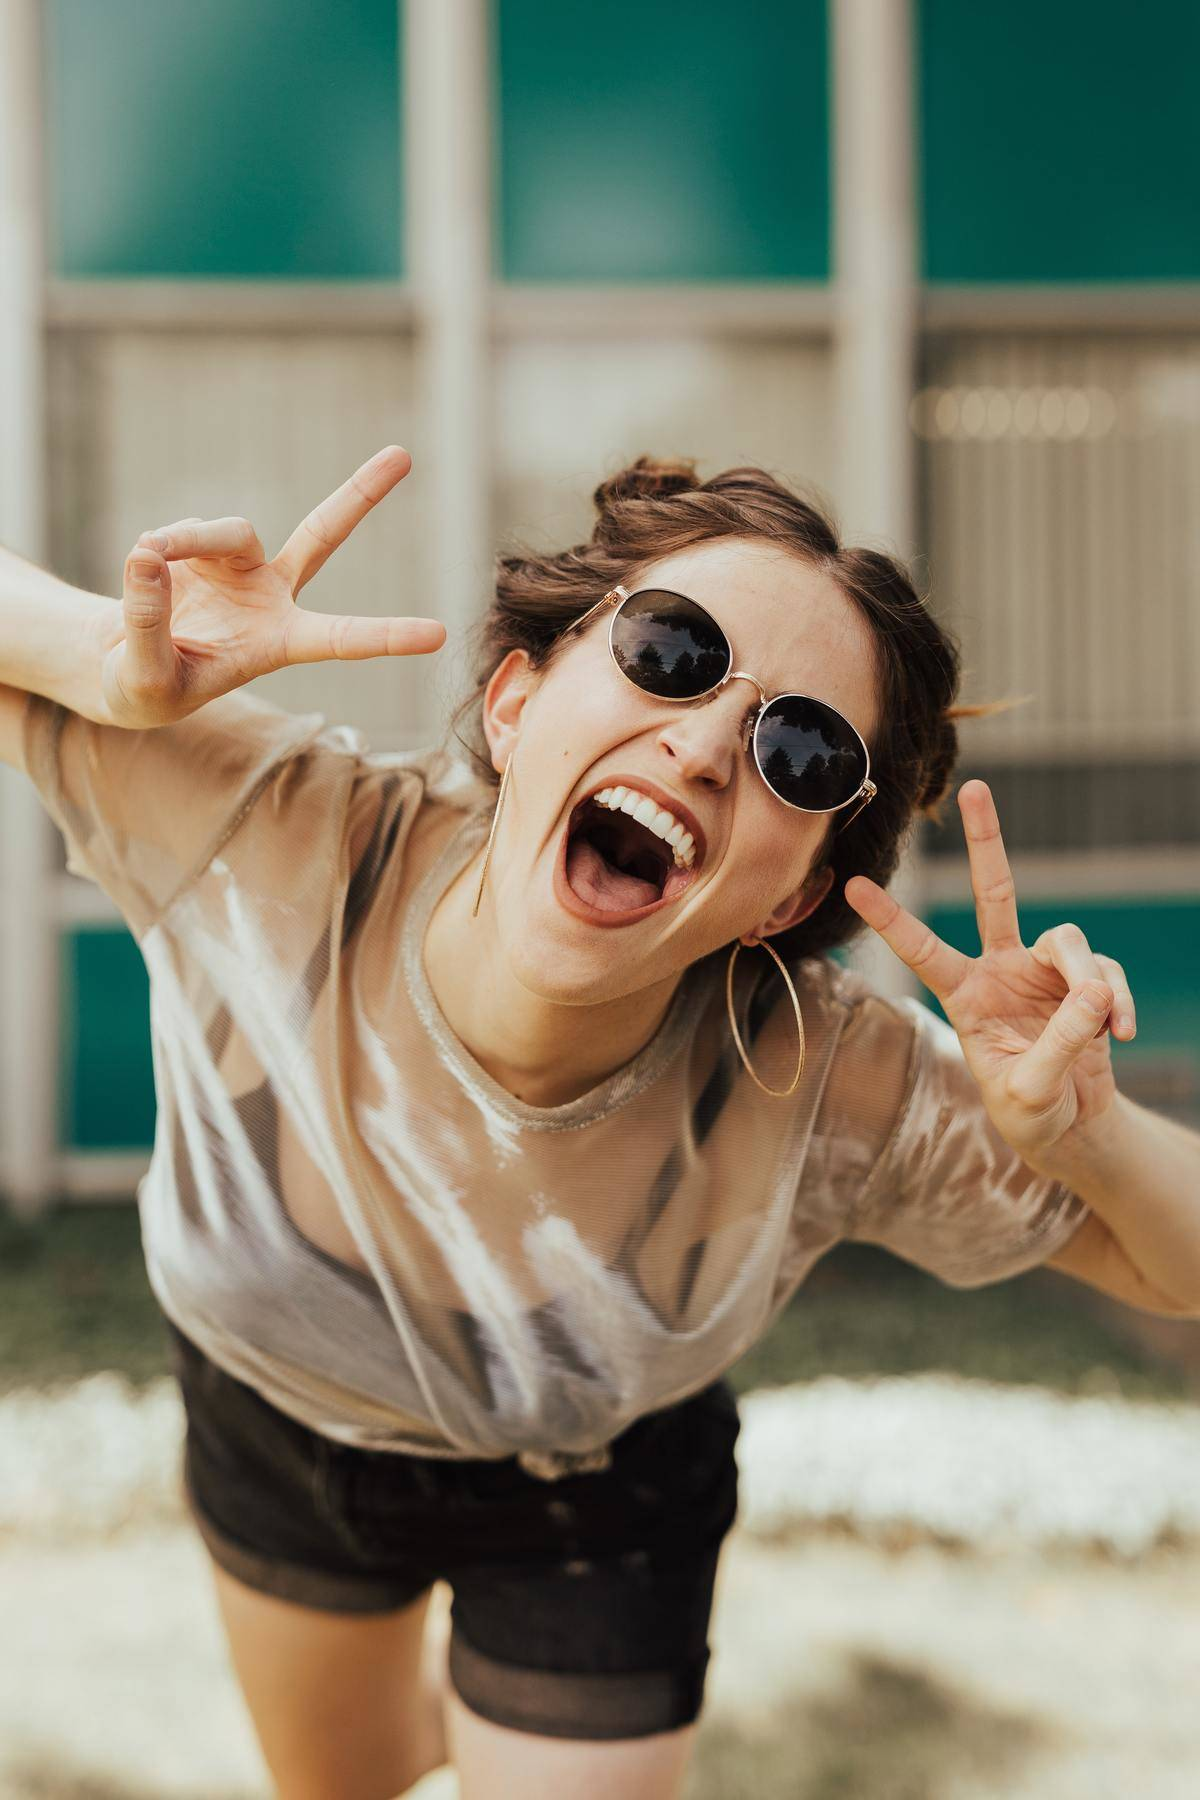 Happy woman in sunglasses giving double-peace sign